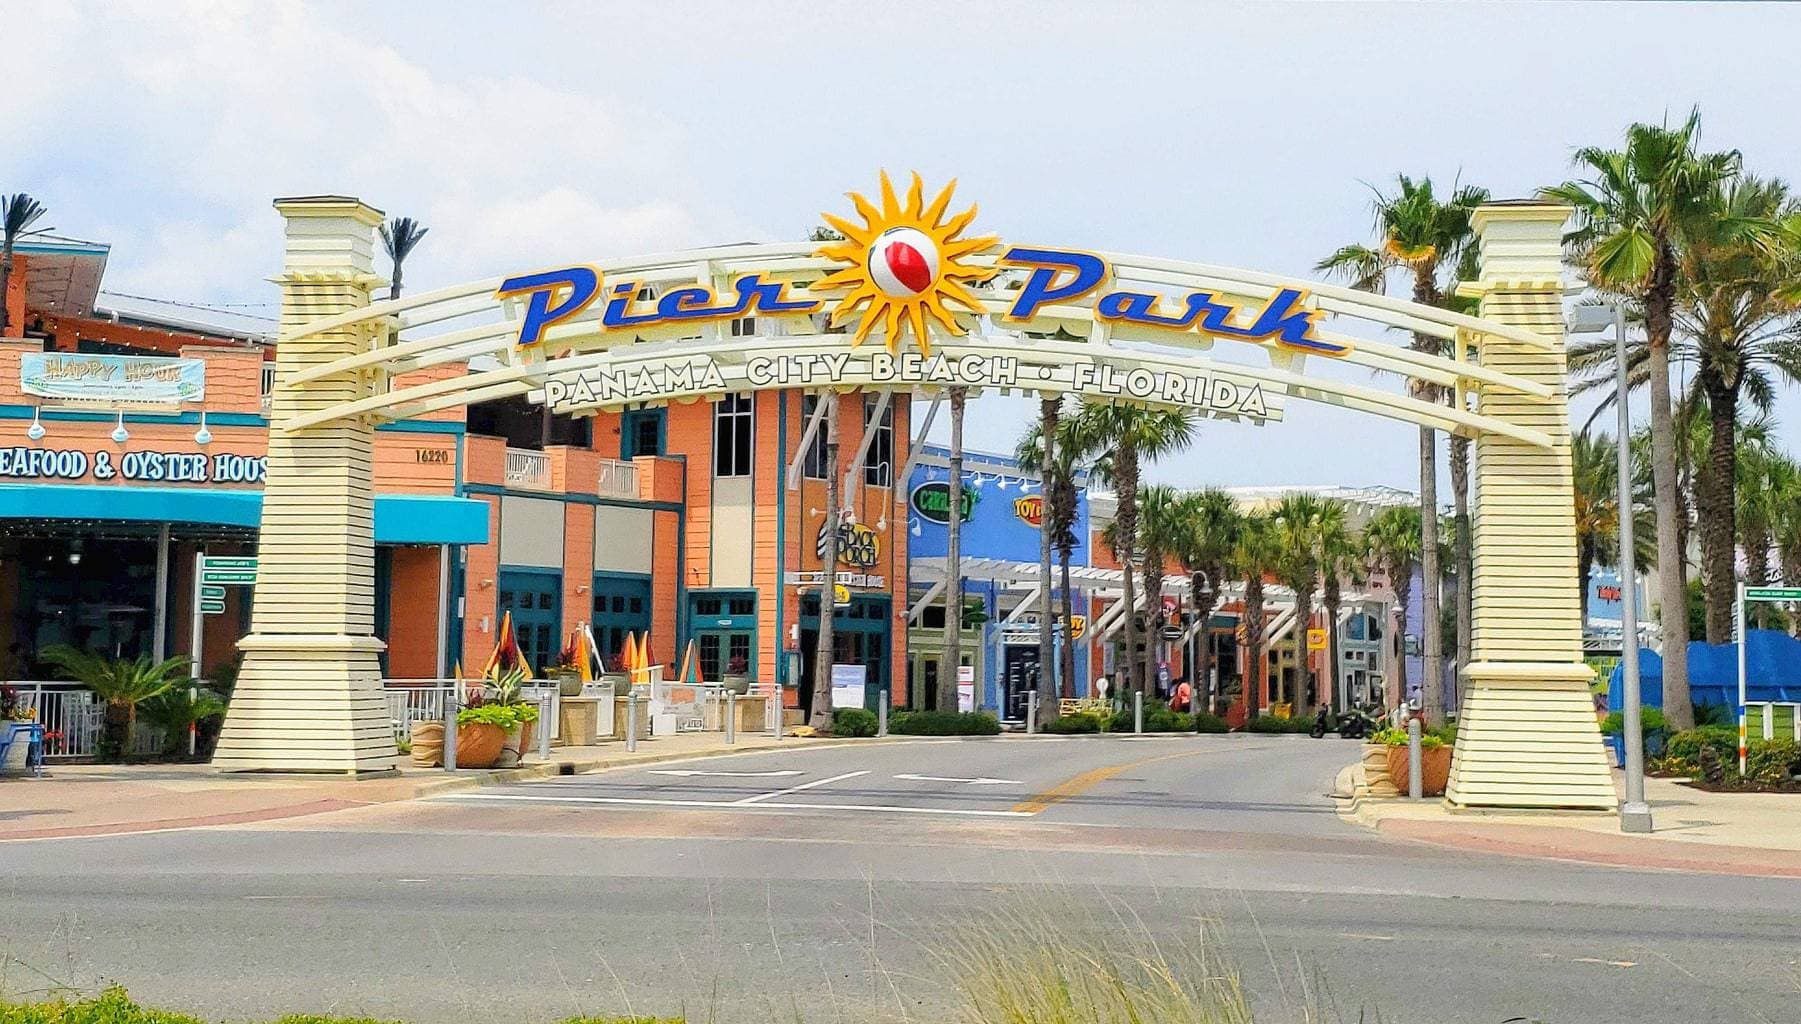 Pier Park, Panama City Beach, Real Fun Beach, Florida Beaches